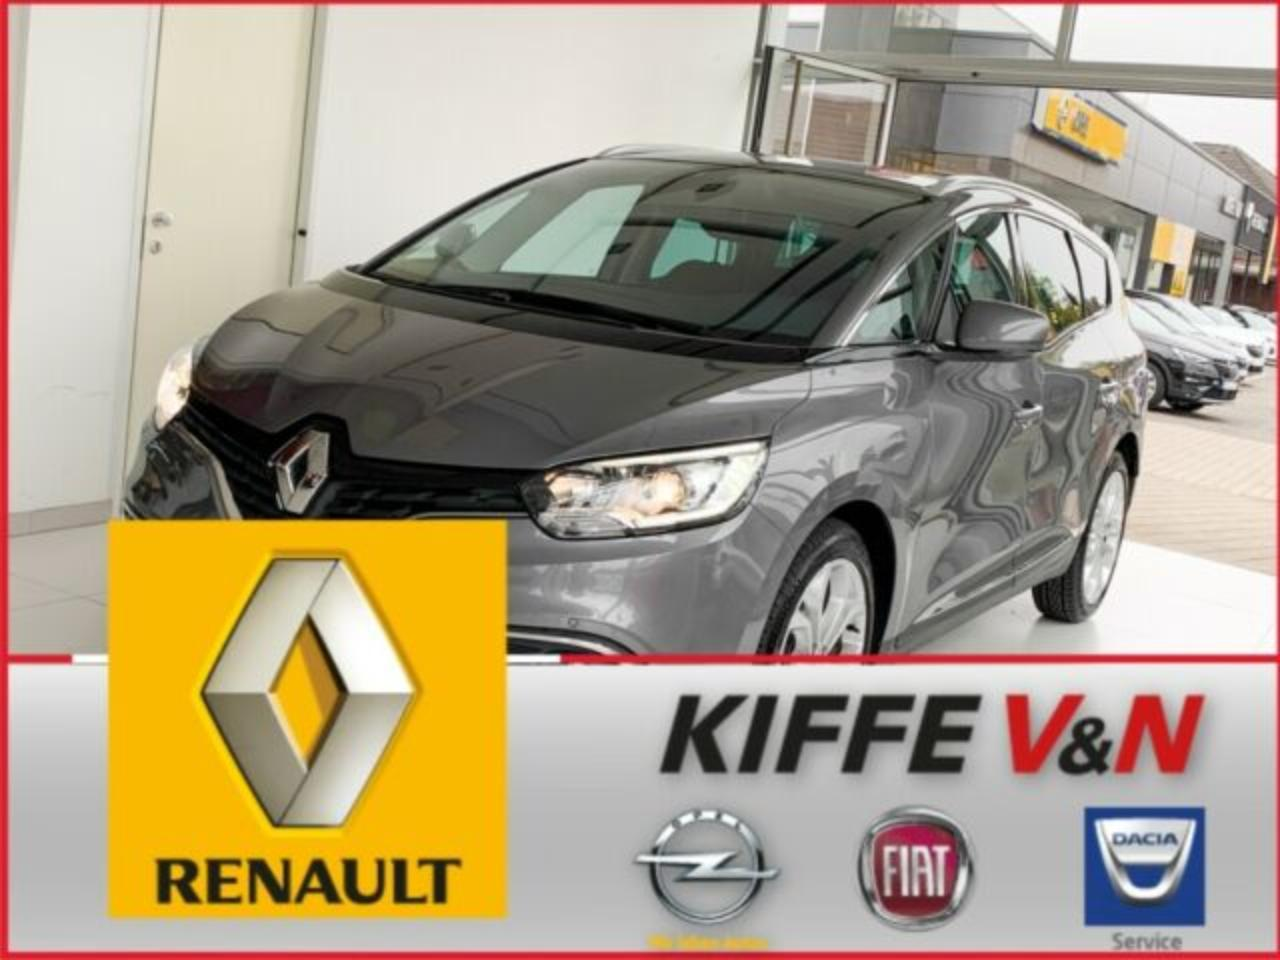 Renault Grand Scenic 1.2 TCe 115 DAB Alu Panorama-Fronts